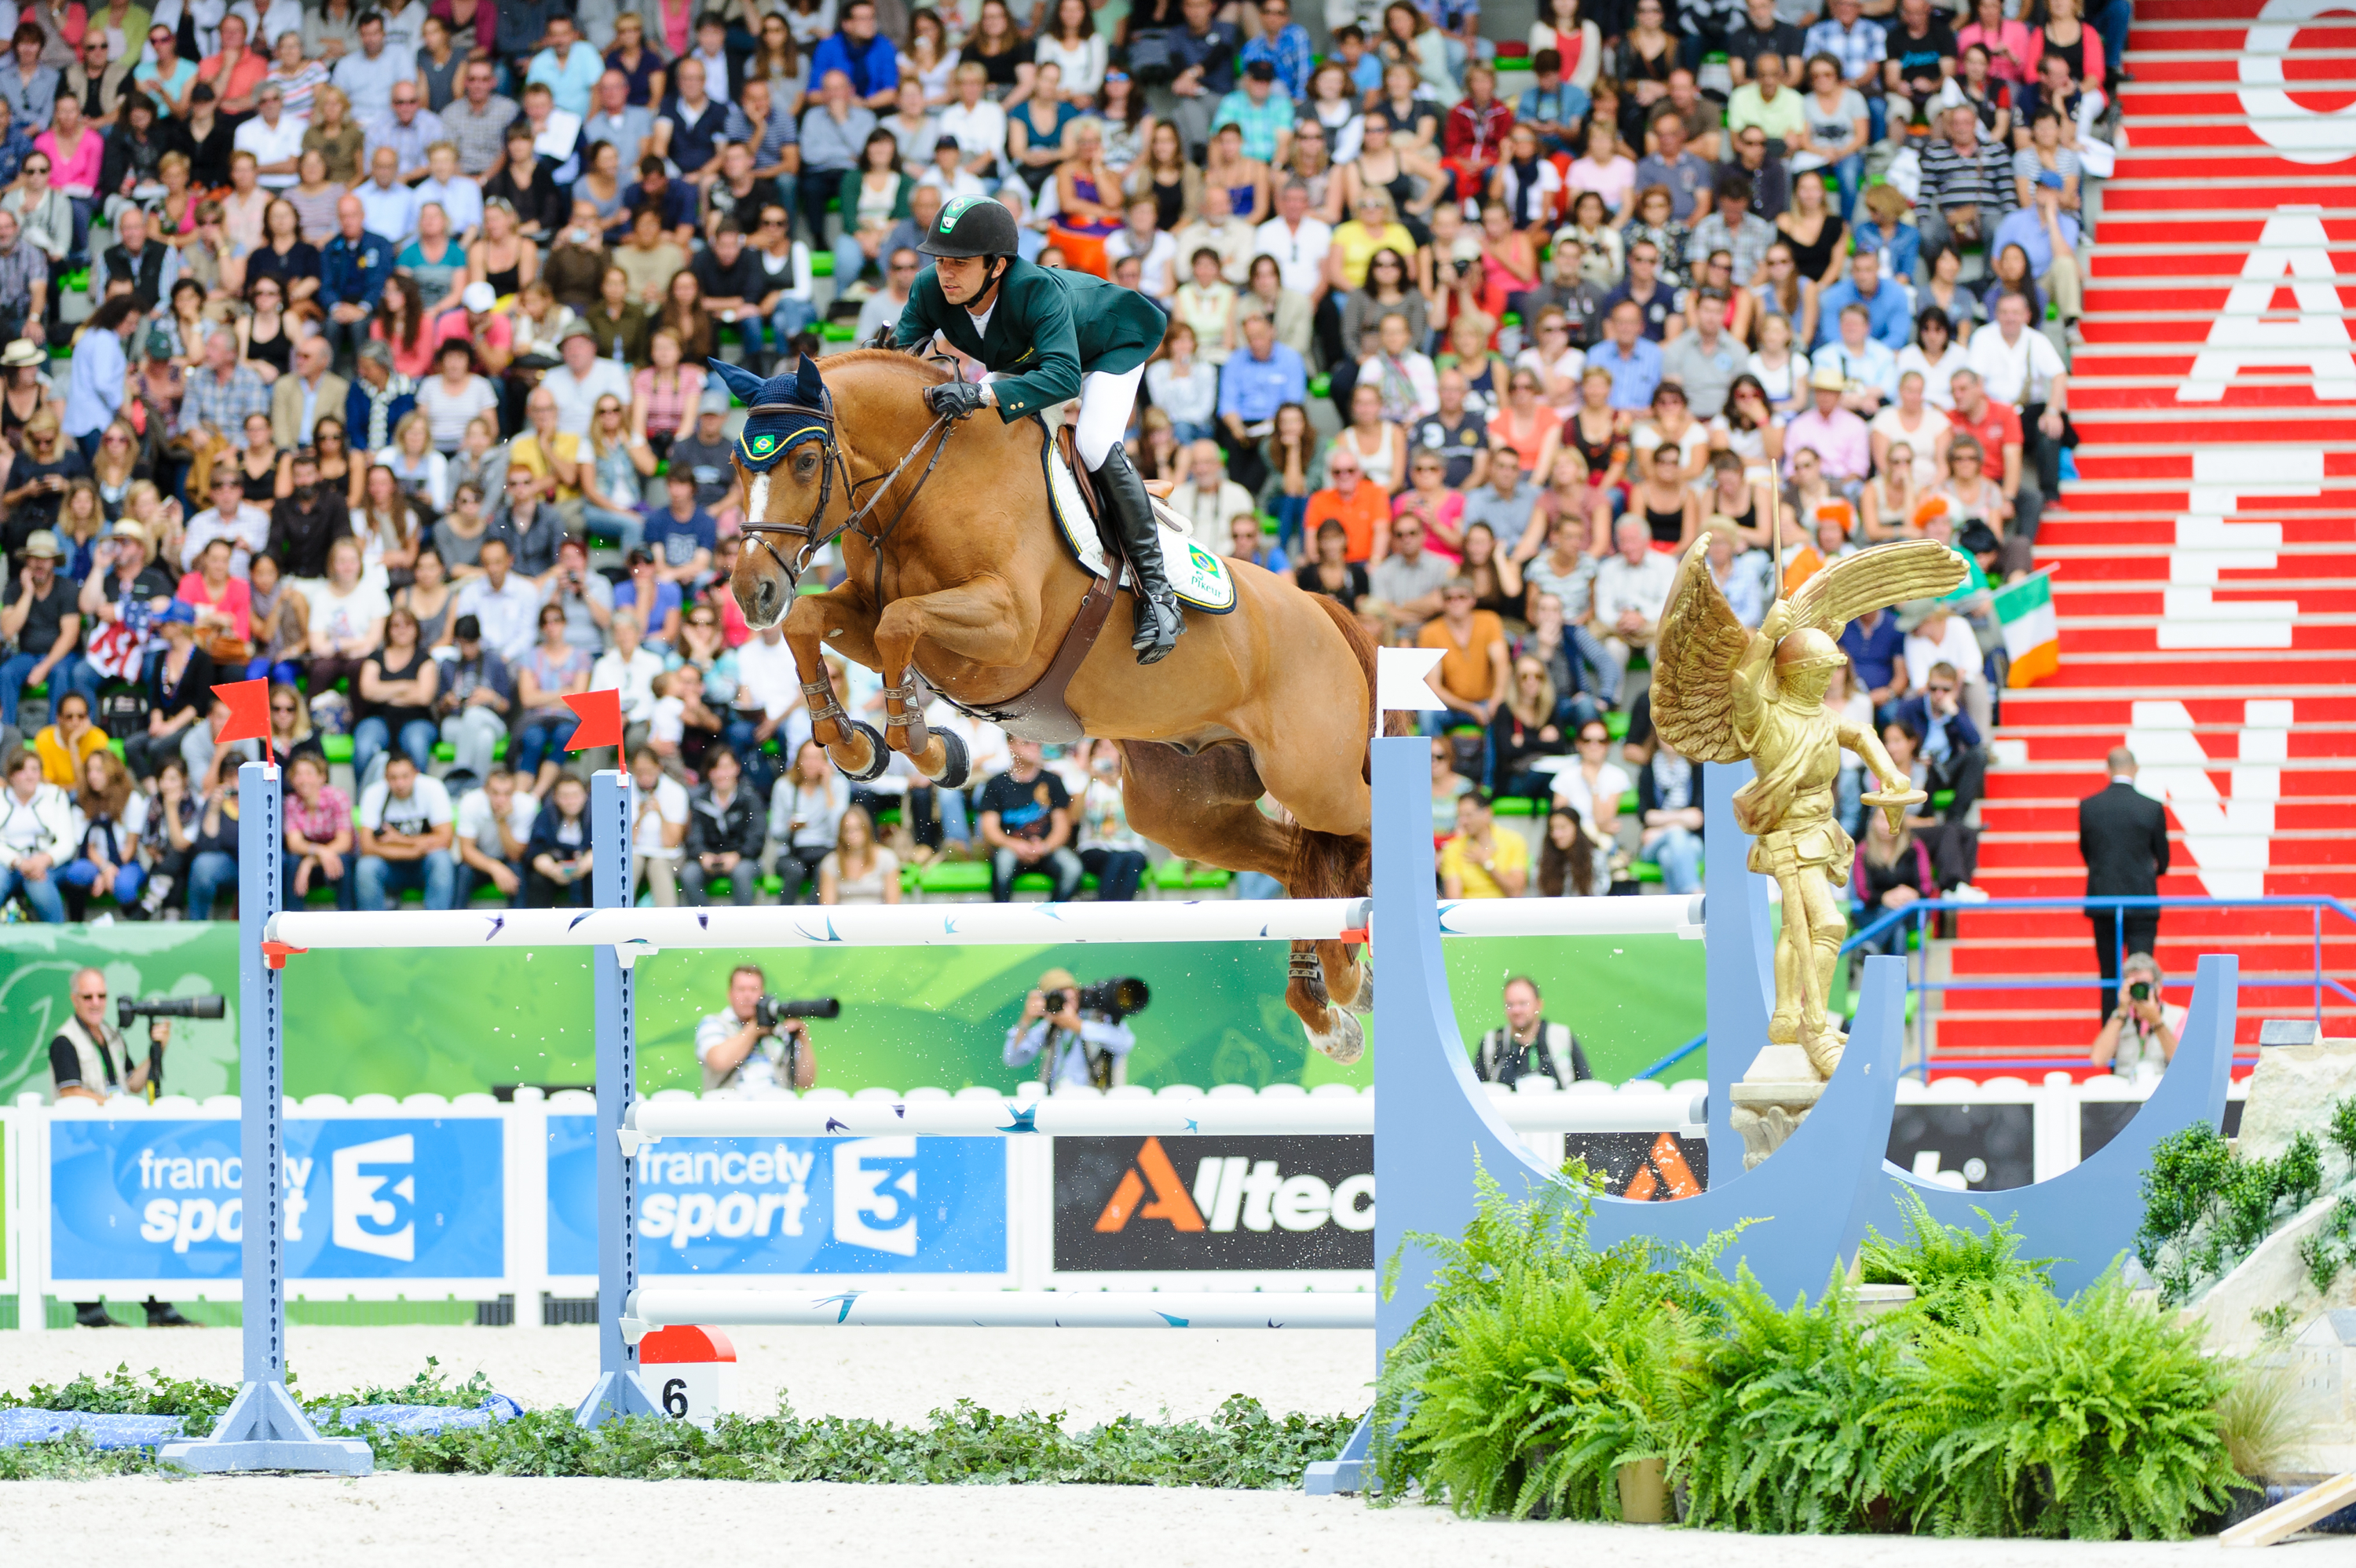 MODOLO ZANOTELLI, Marlon, (BRA), AD Clouwni during Showjumping 1,50 class at Alltech World Equestrian Games at Stade Michel D' Ornano, Caen - France